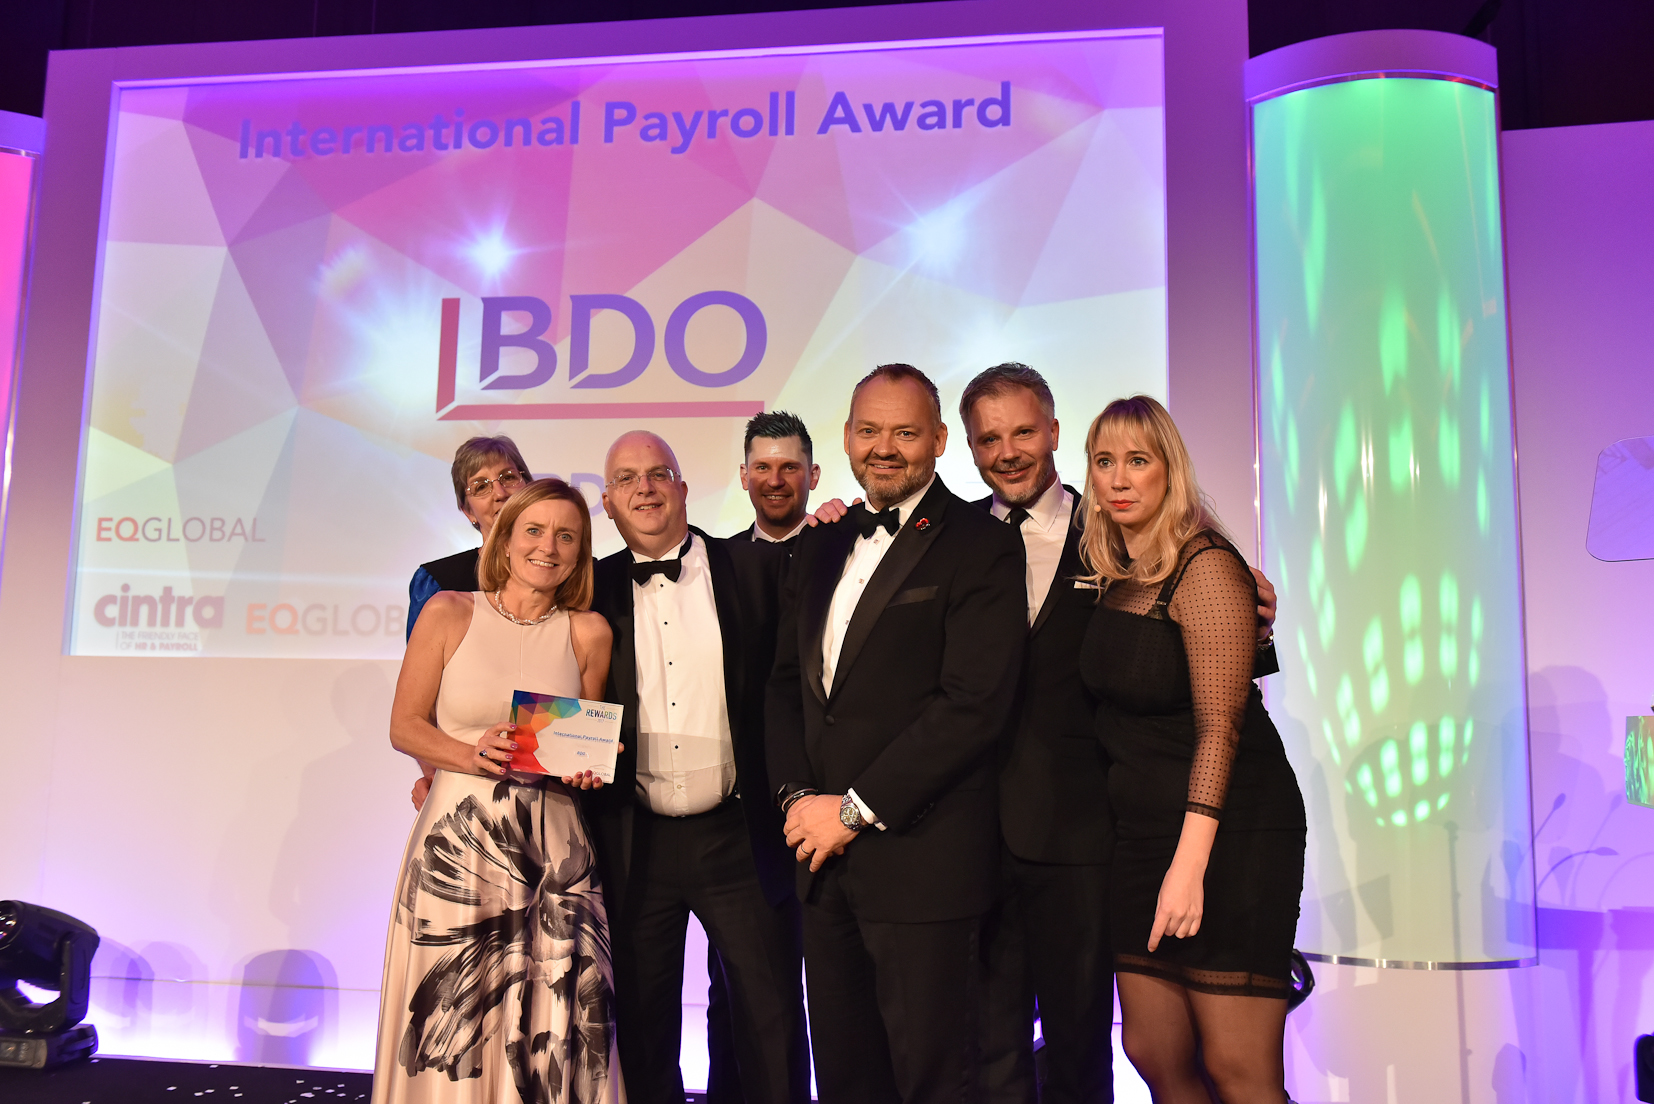 Winners 2017 - 9 International Payroll Award - sponsored by EQ Global